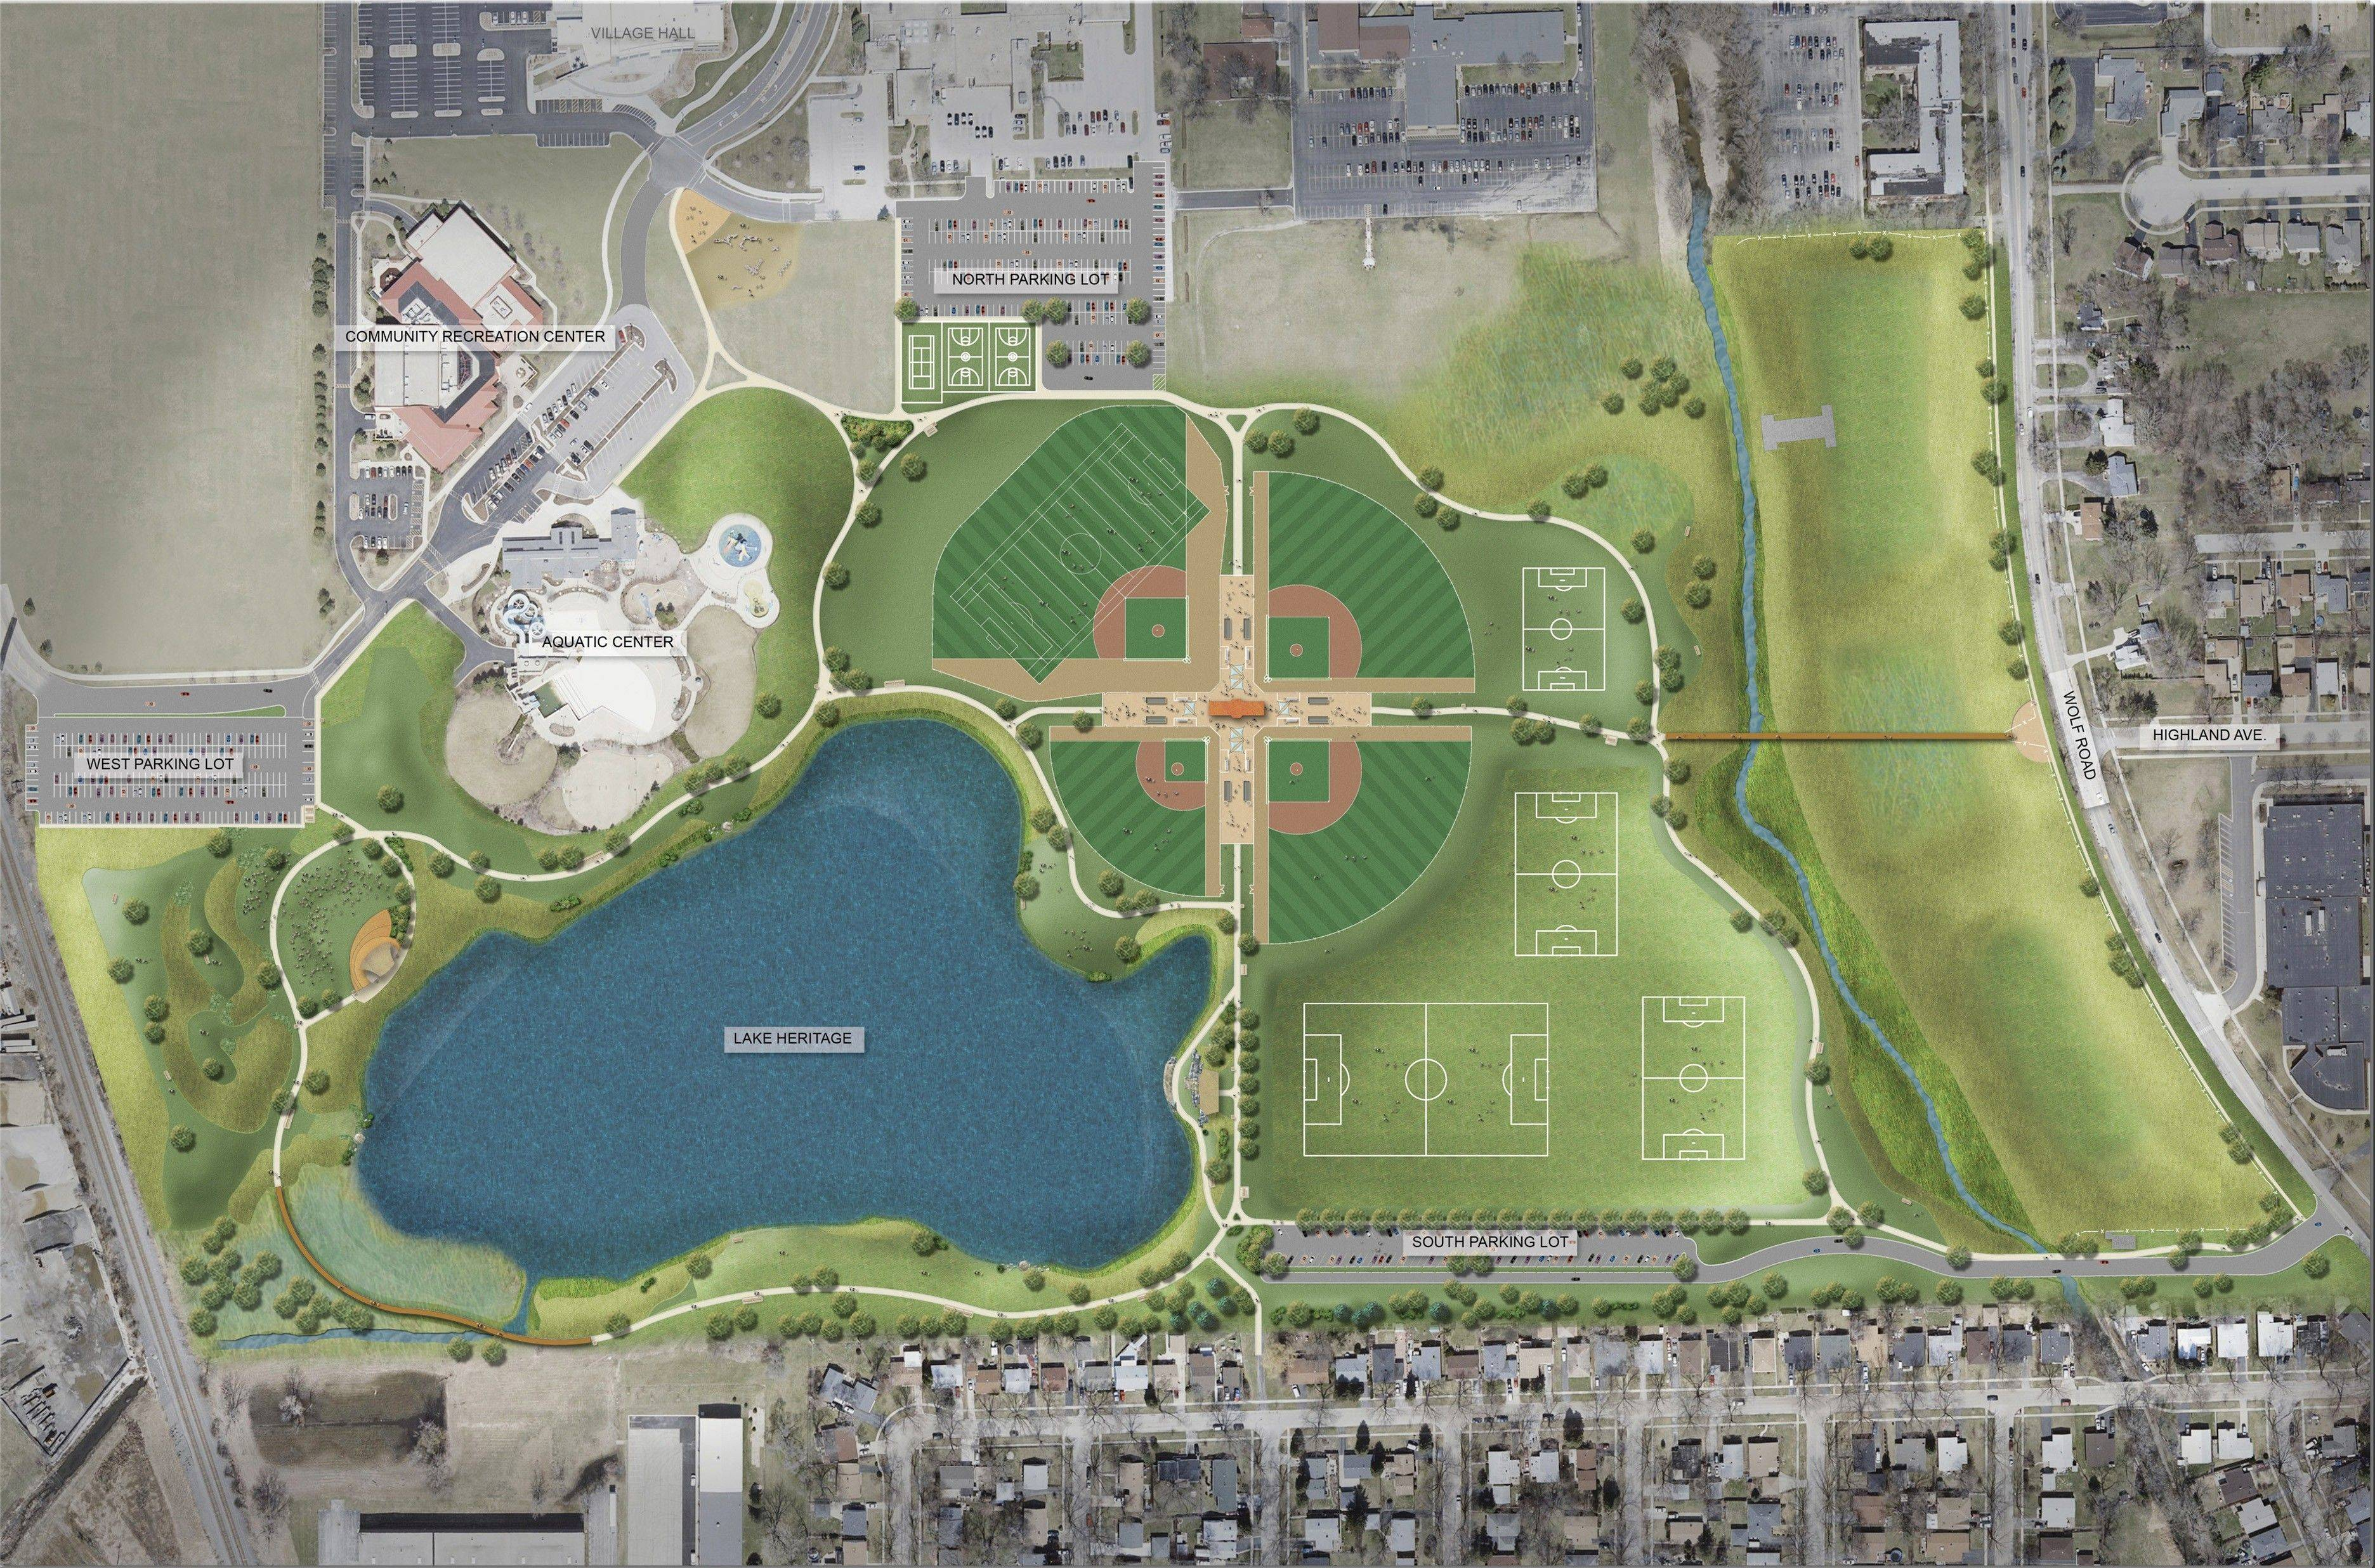 This is a sketch of what the remodeled park will look like.